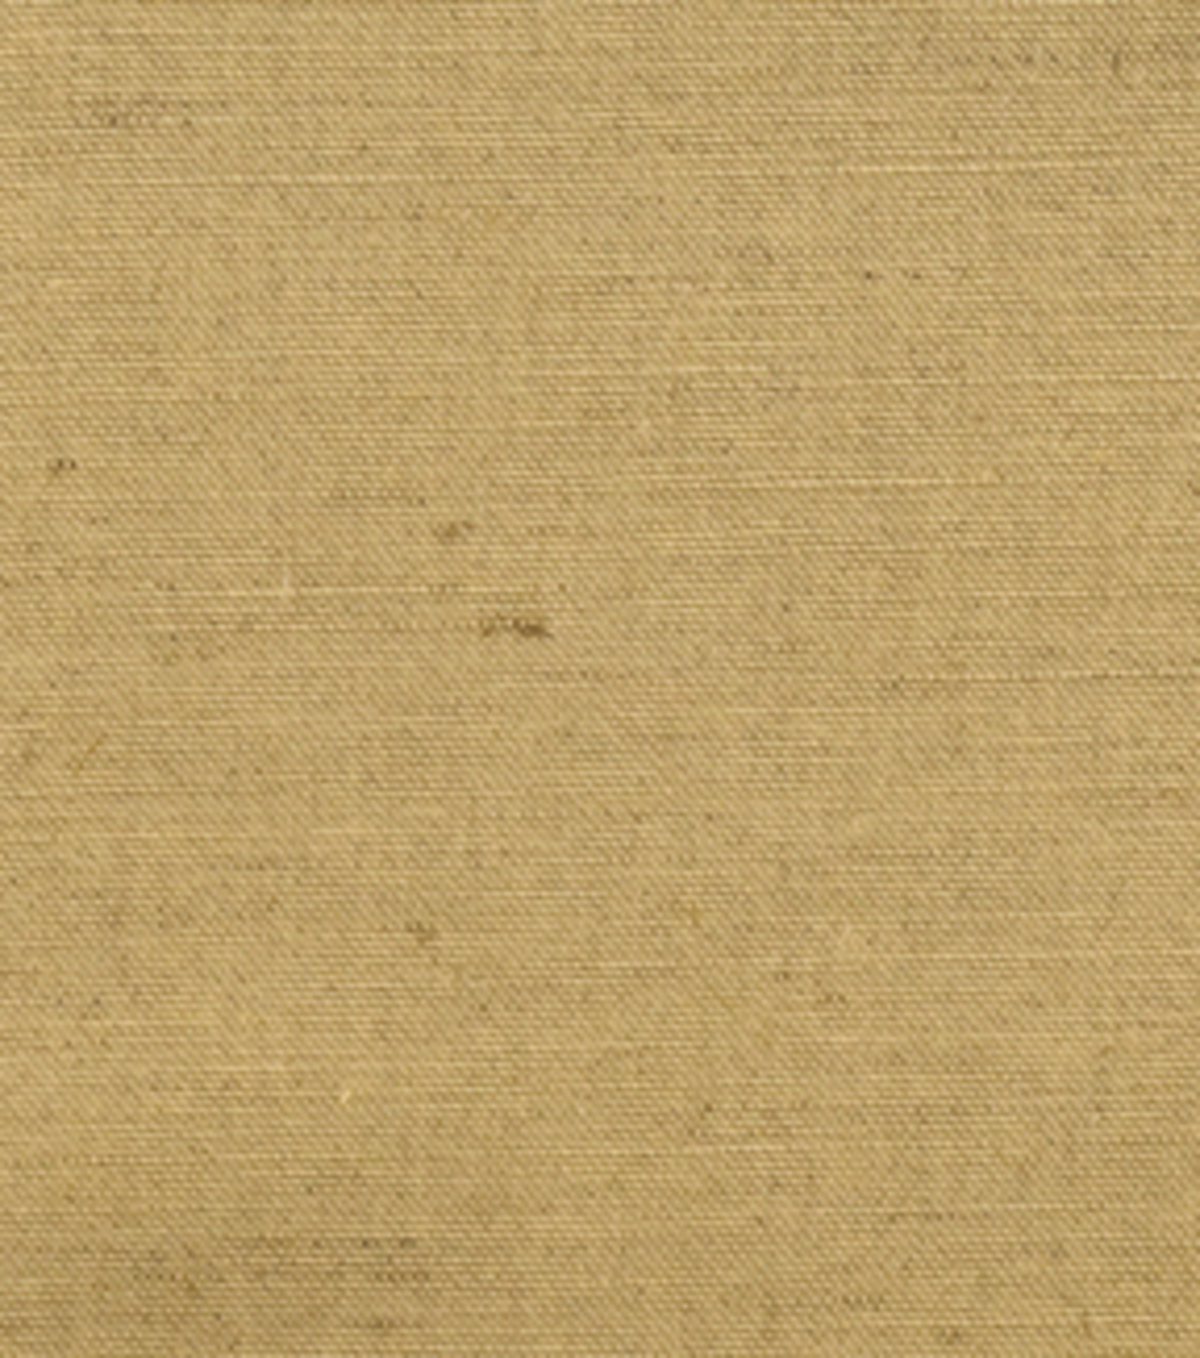 Home Decor 8\u0022x8\u0022 Fabric Swatch-Signature Series Sonoma Linen-Cotton Raffia